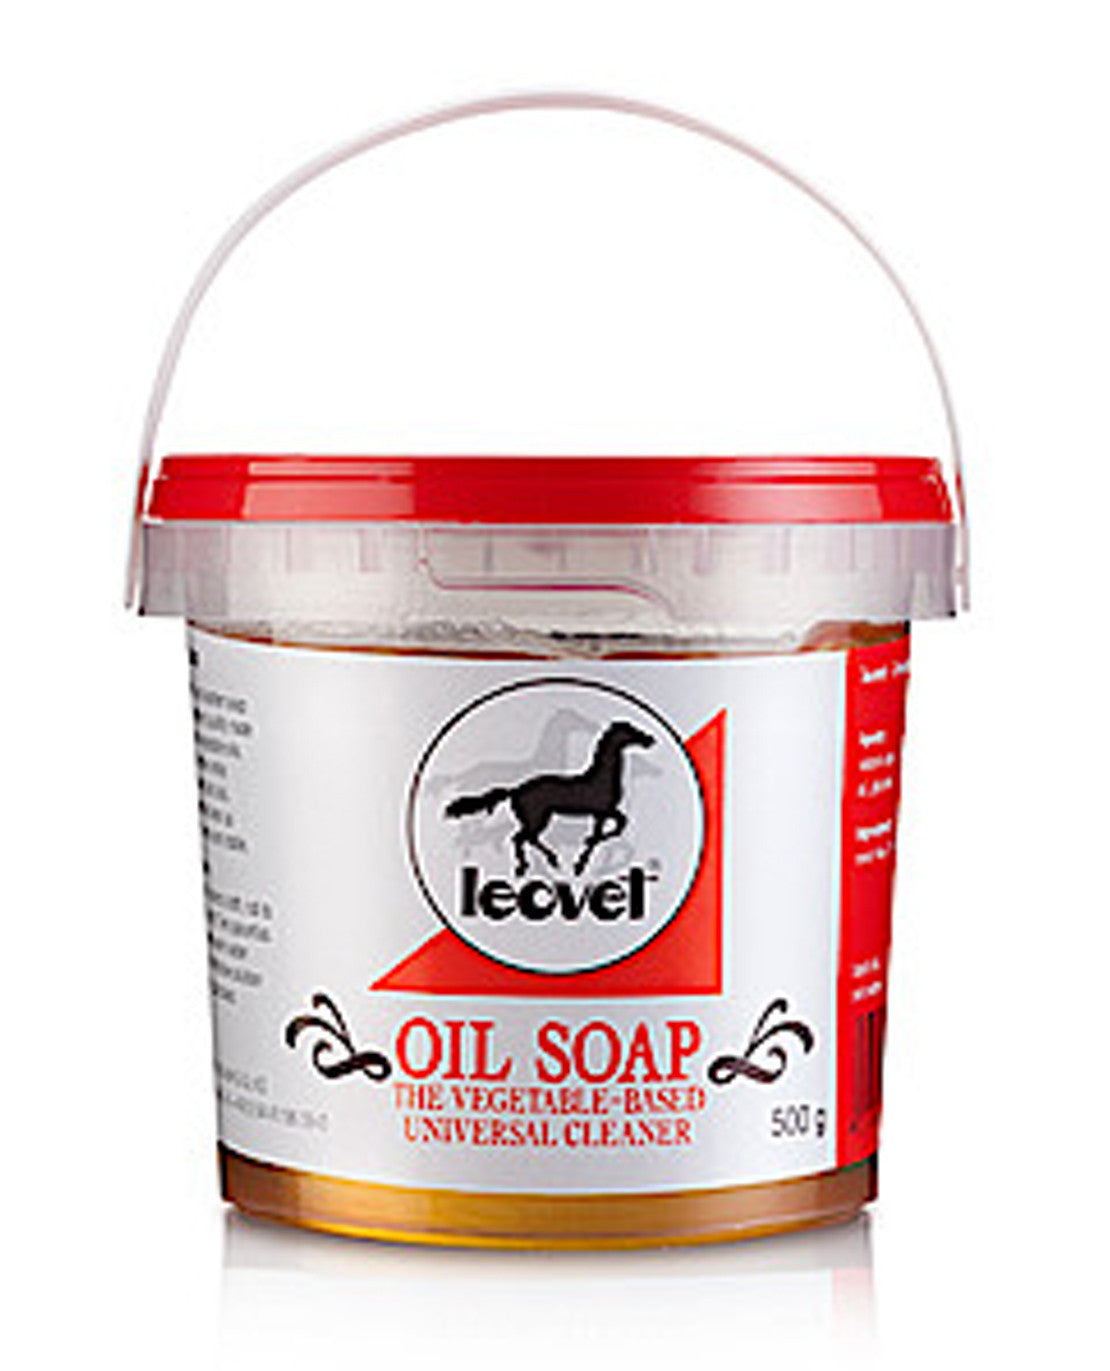 Leovet Oil Soap Cleaner - North Shore Saddlery